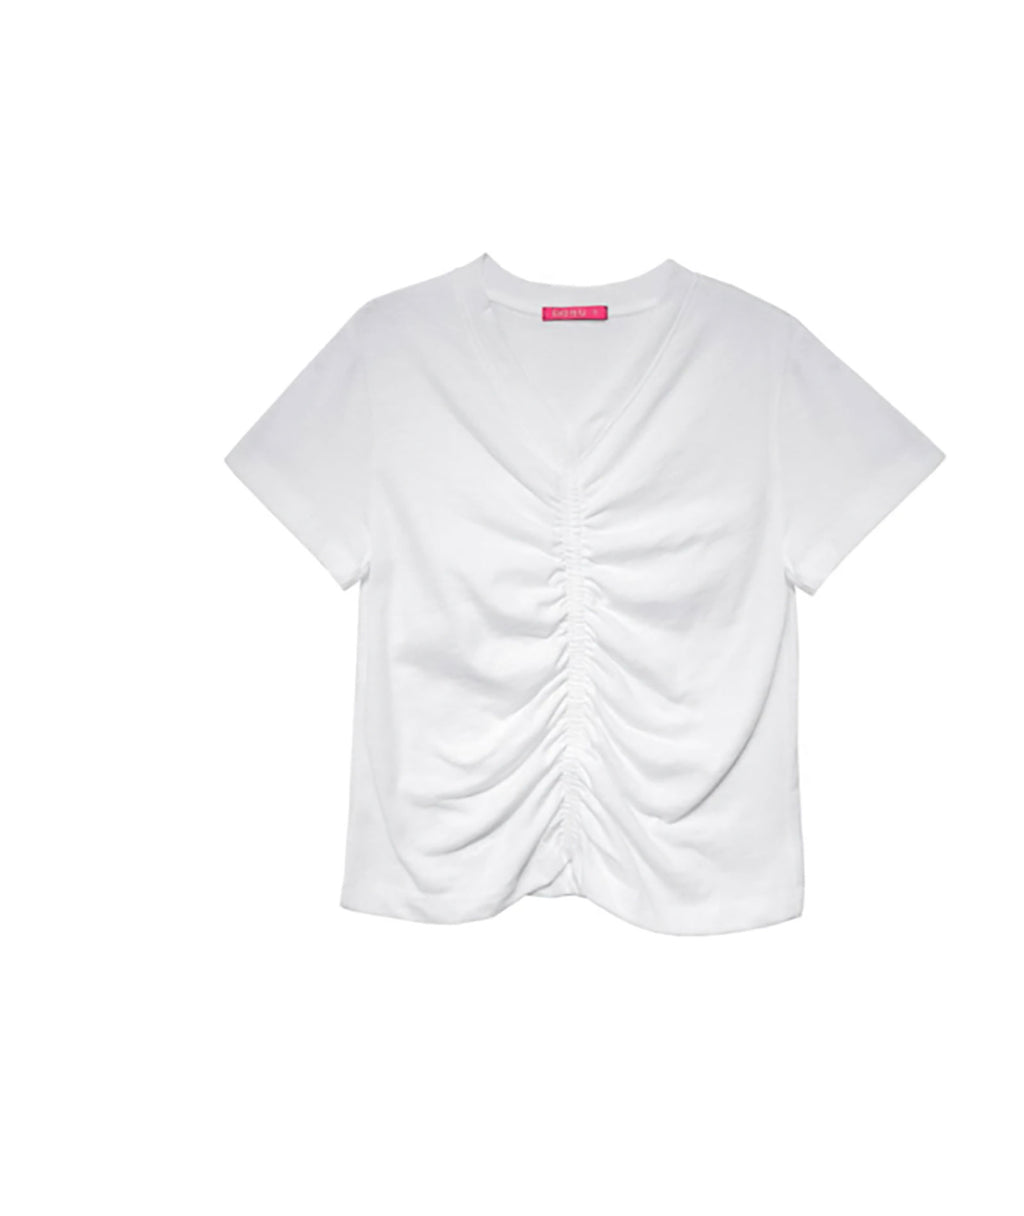 Me.n.u Girls White V Neck Cinched Tee